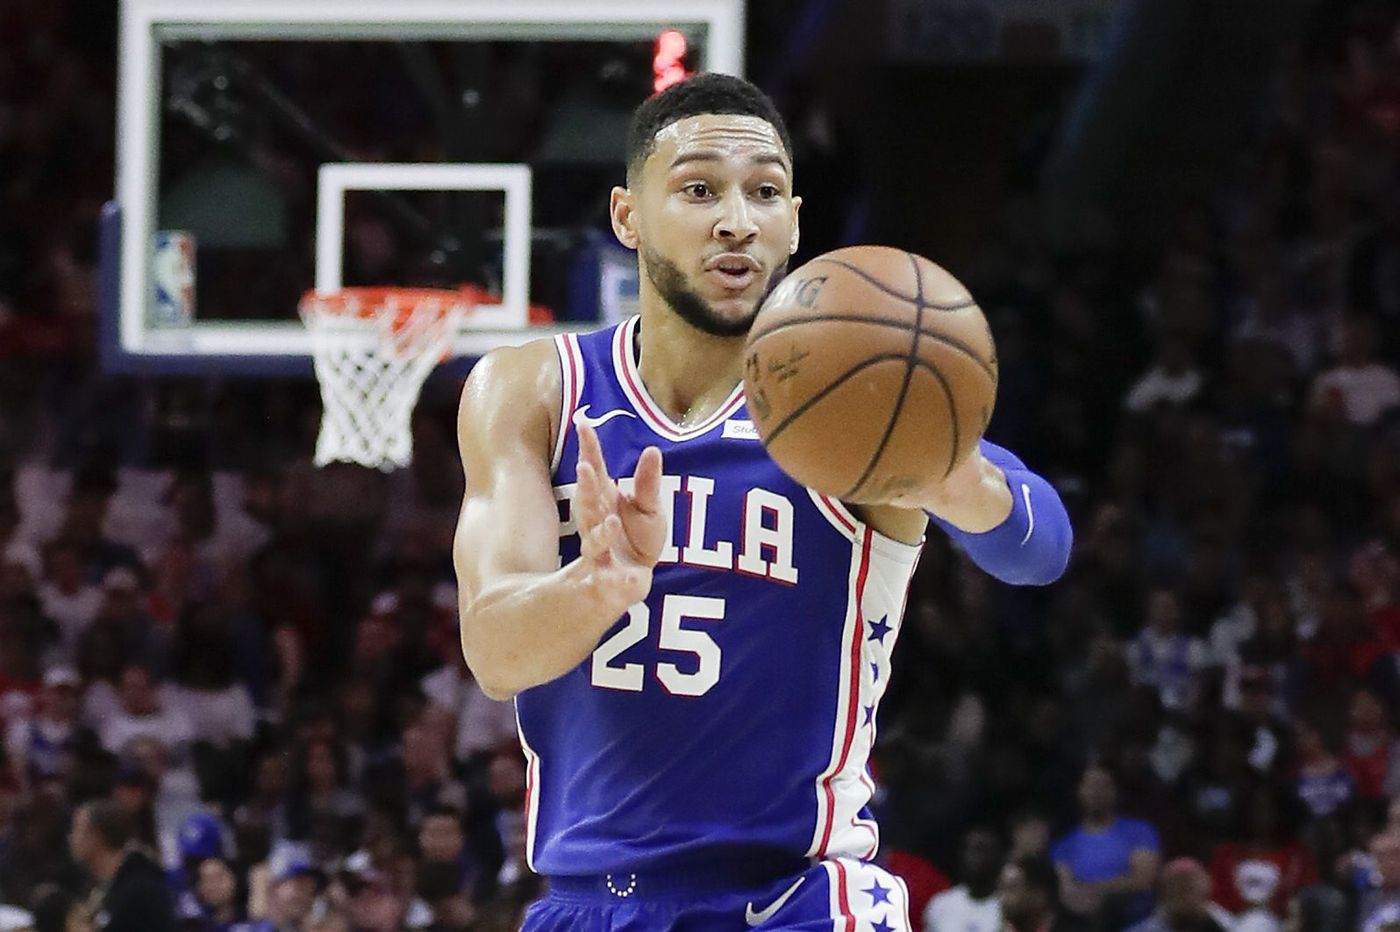 Sixers' Ben Simmons downgraded to doubtful for Pistons game